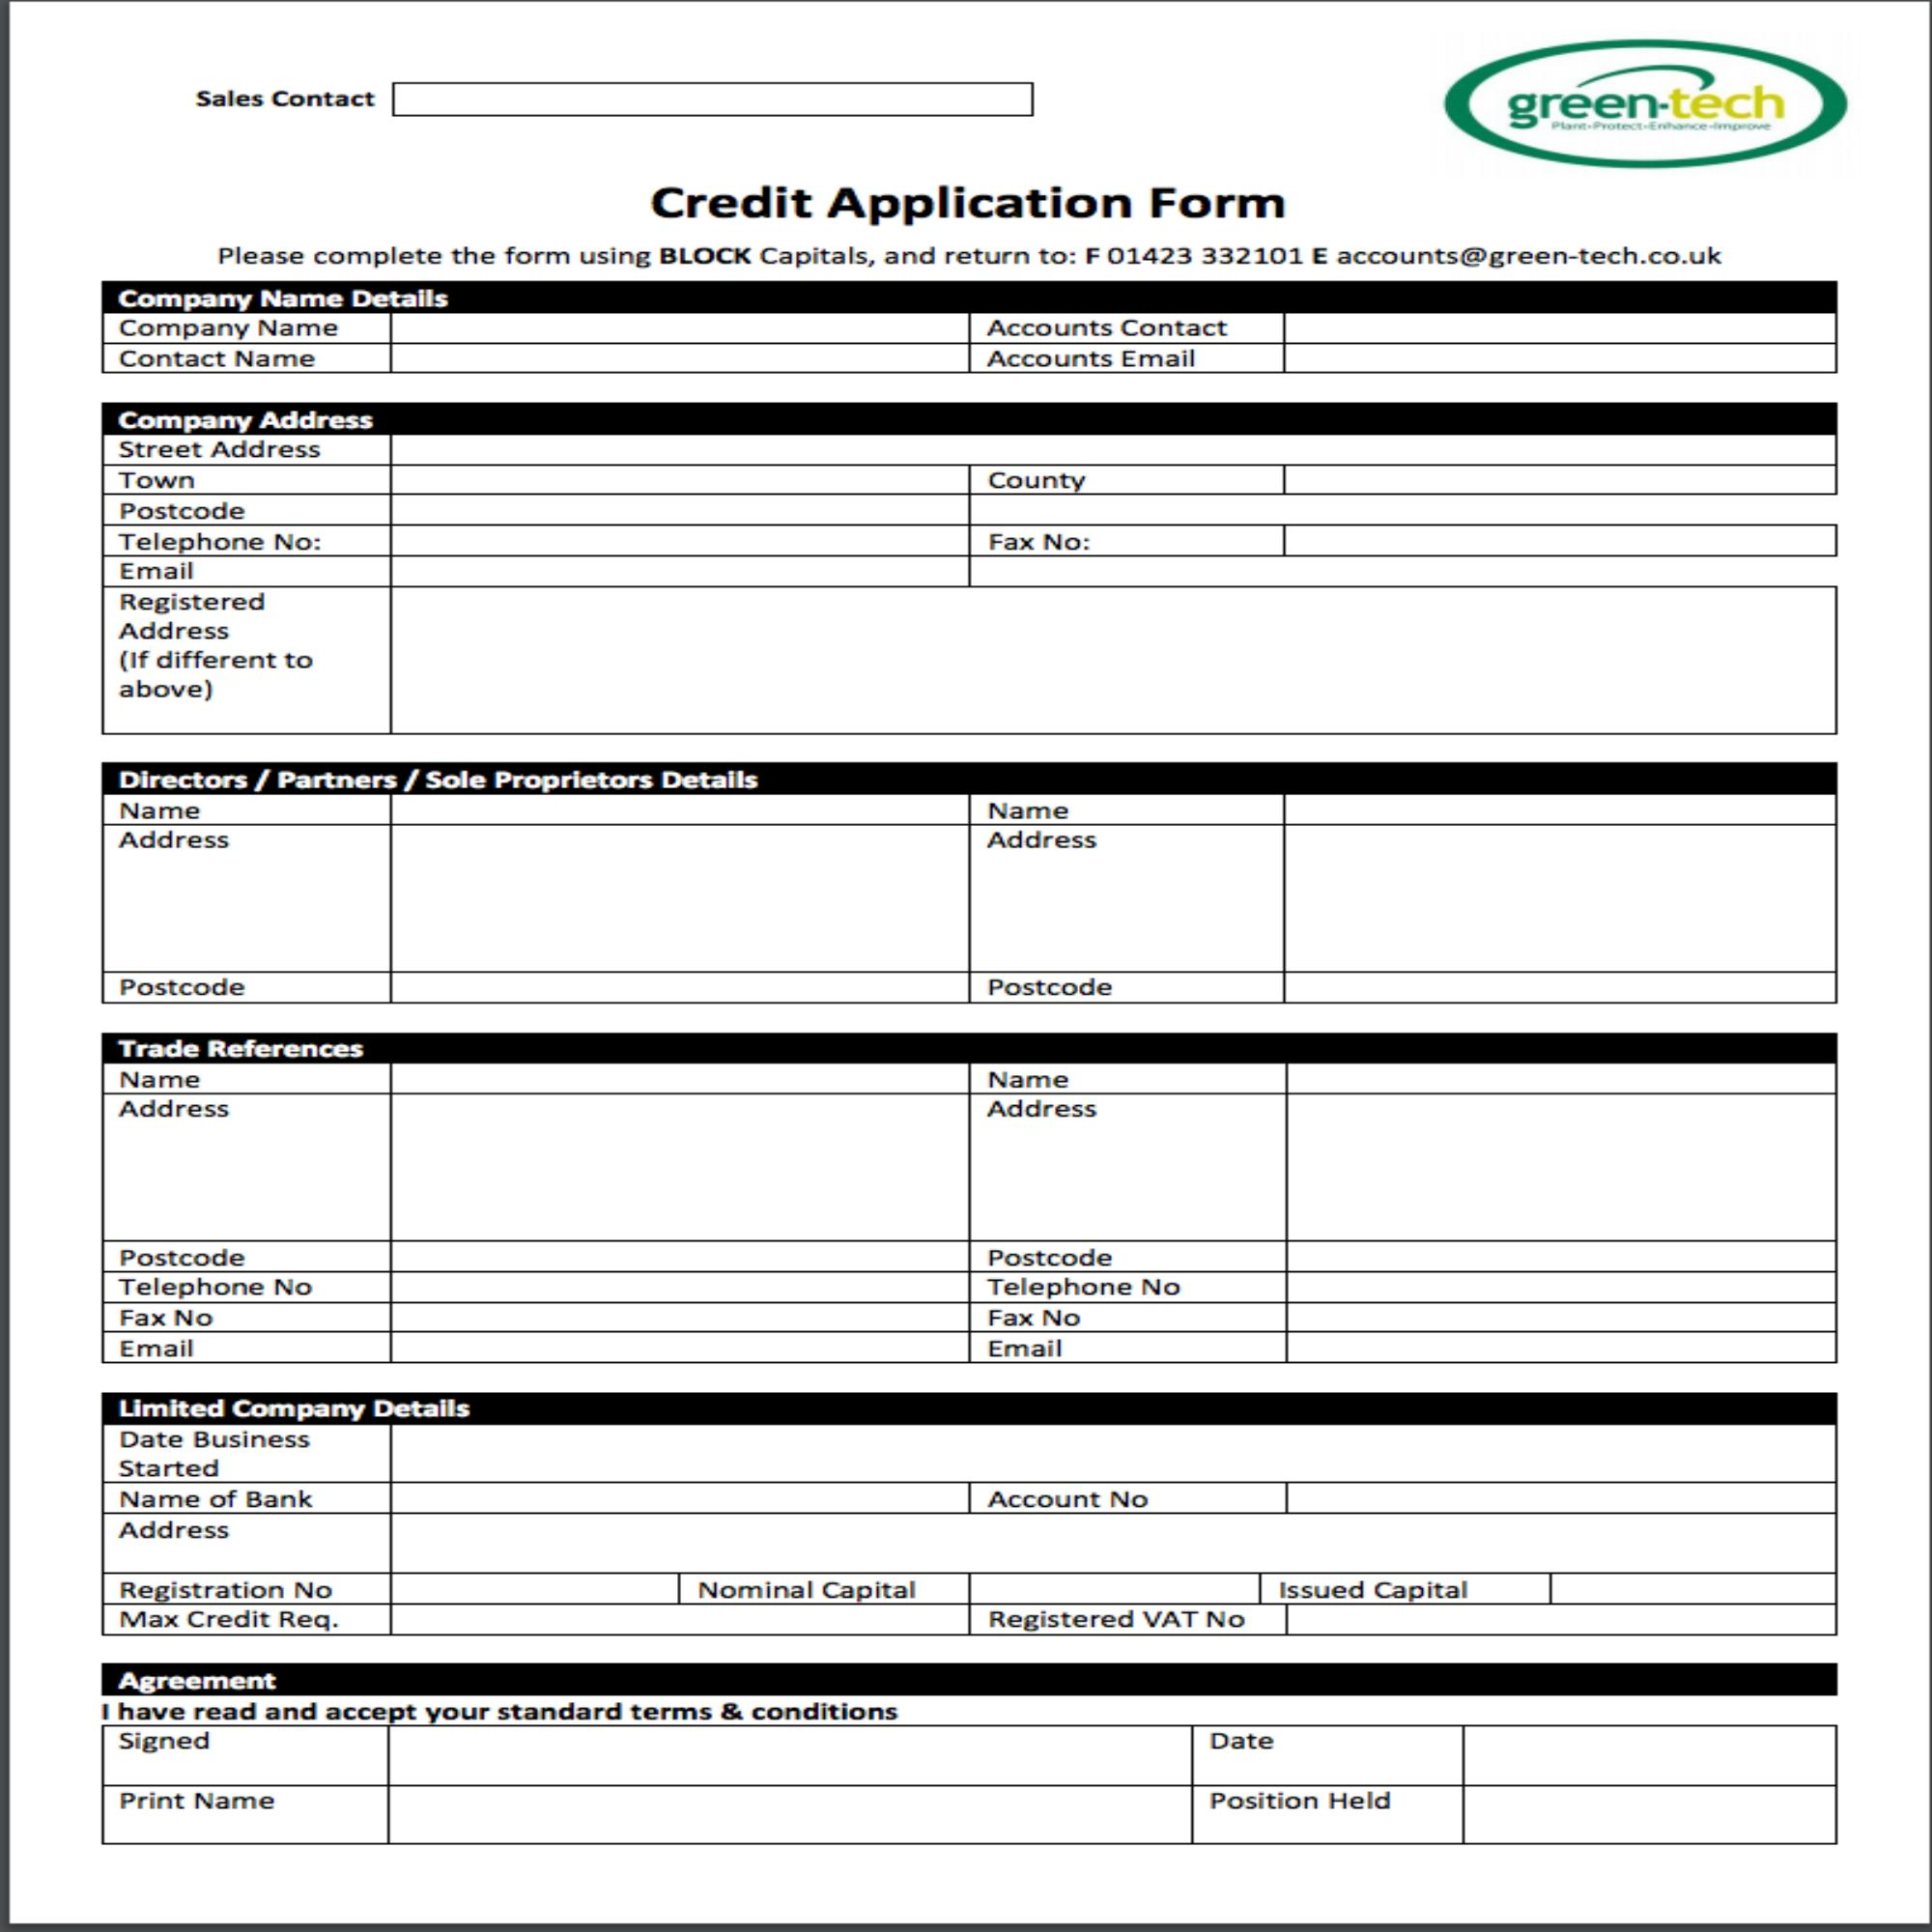 Green-tech Credit Application